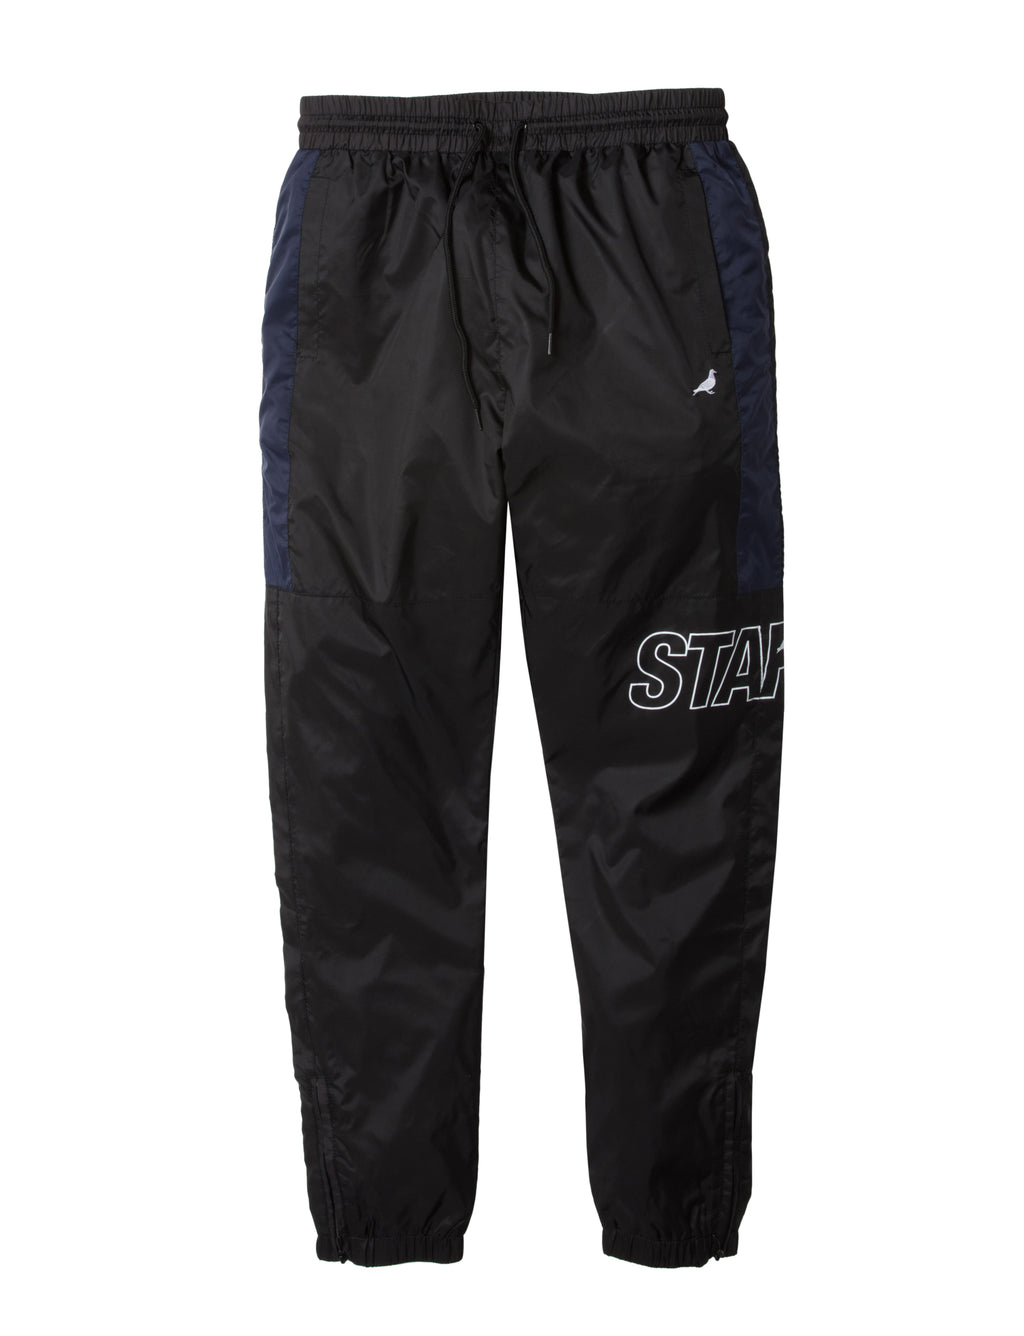 Two Tone Nylon Pant - Pants | Staple Pigeon